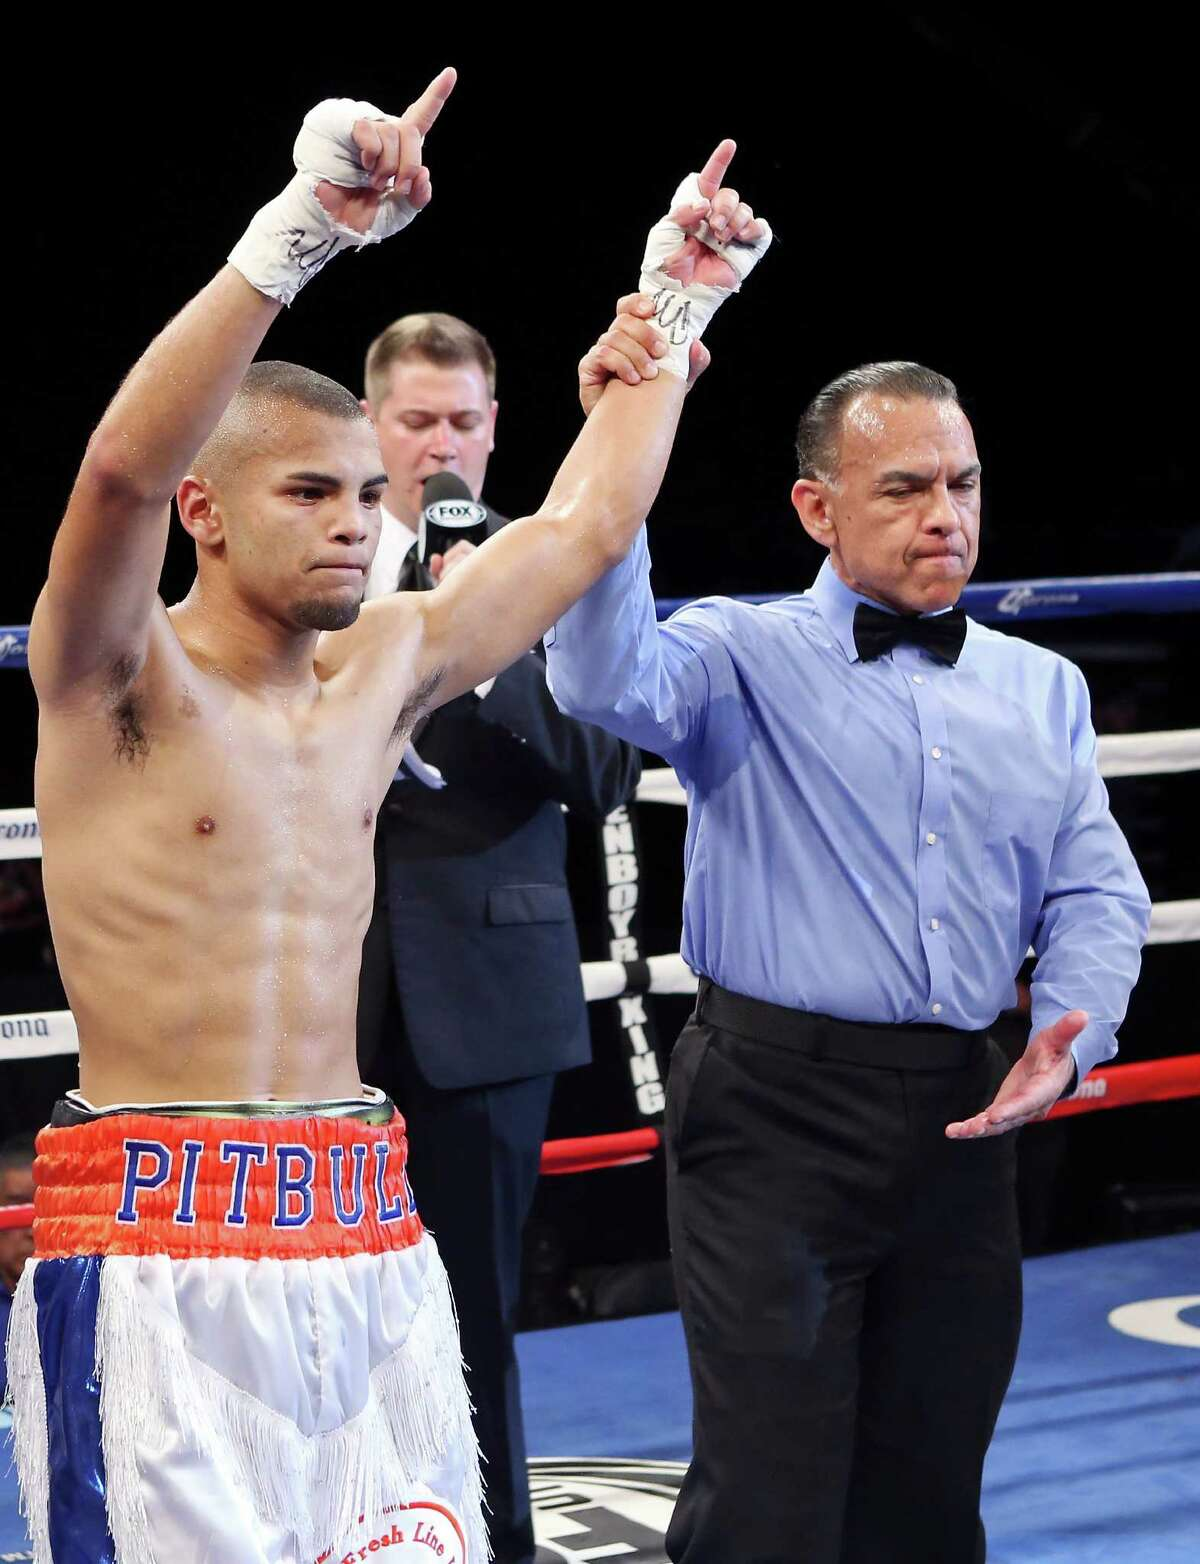 Javier Rodriguez (left) celebrates his win over Manuel Rubalcava (not pictured) after their junior featherweight bout on April 18, 2014 at the Alamodome's Illusions Theater. Rodriguez won unanimous decision.